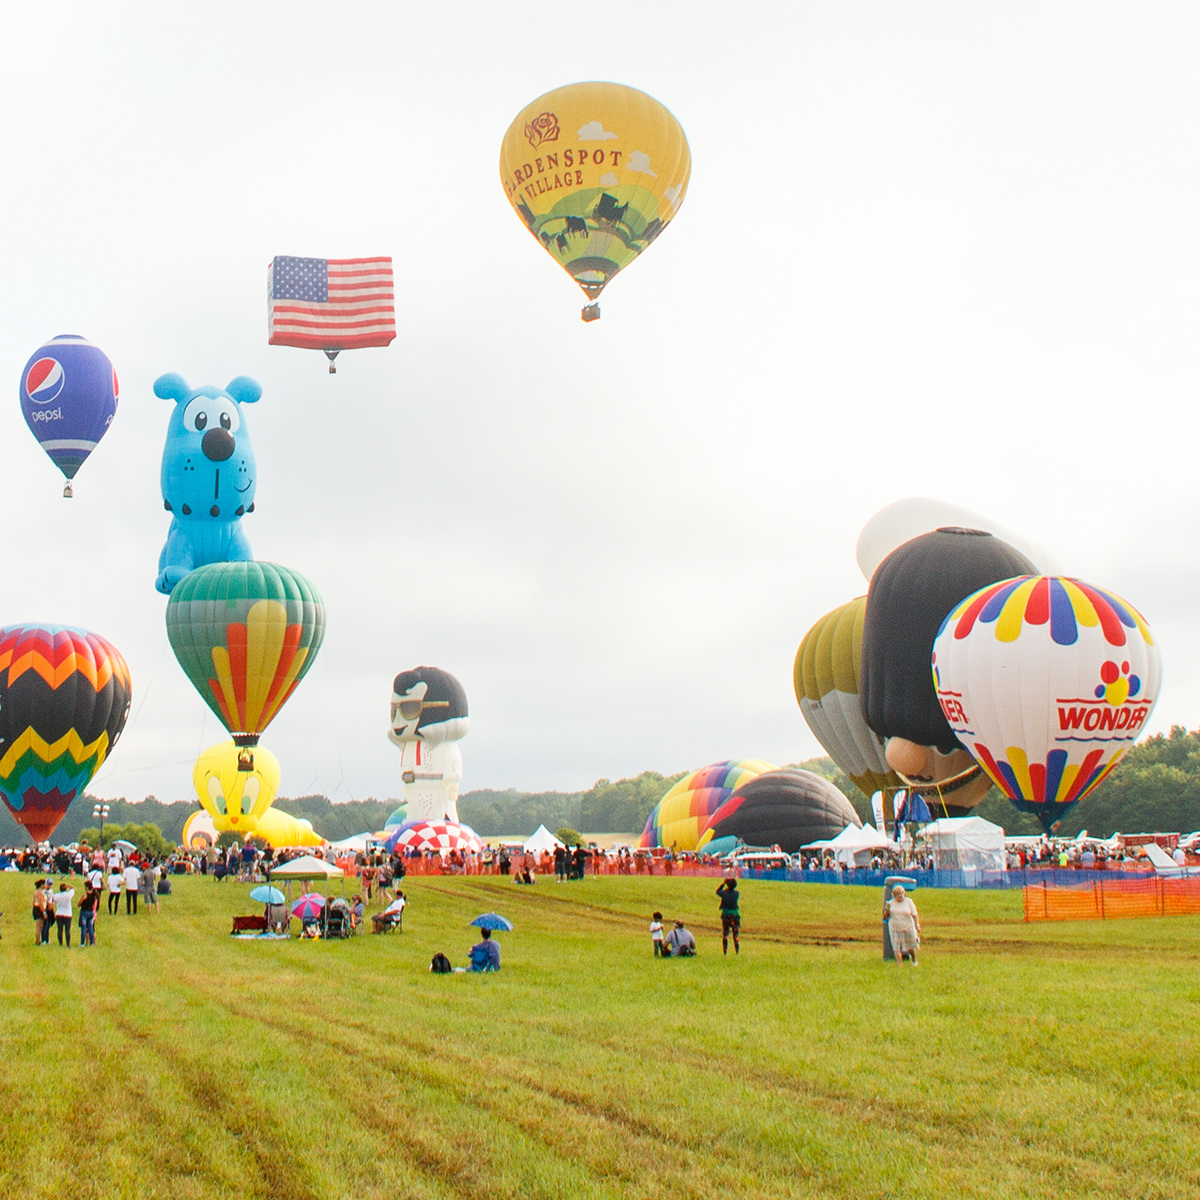 Garden Spot Village Hot Air Balloon